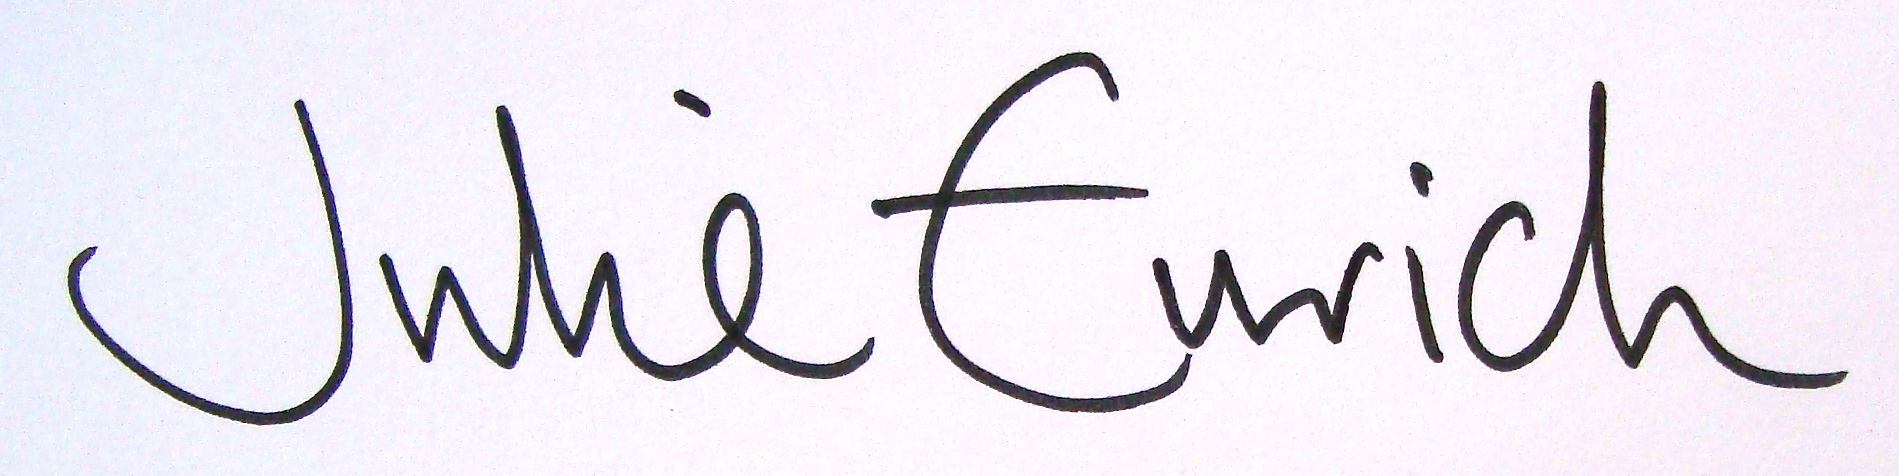 Julie  Eurich's Signature